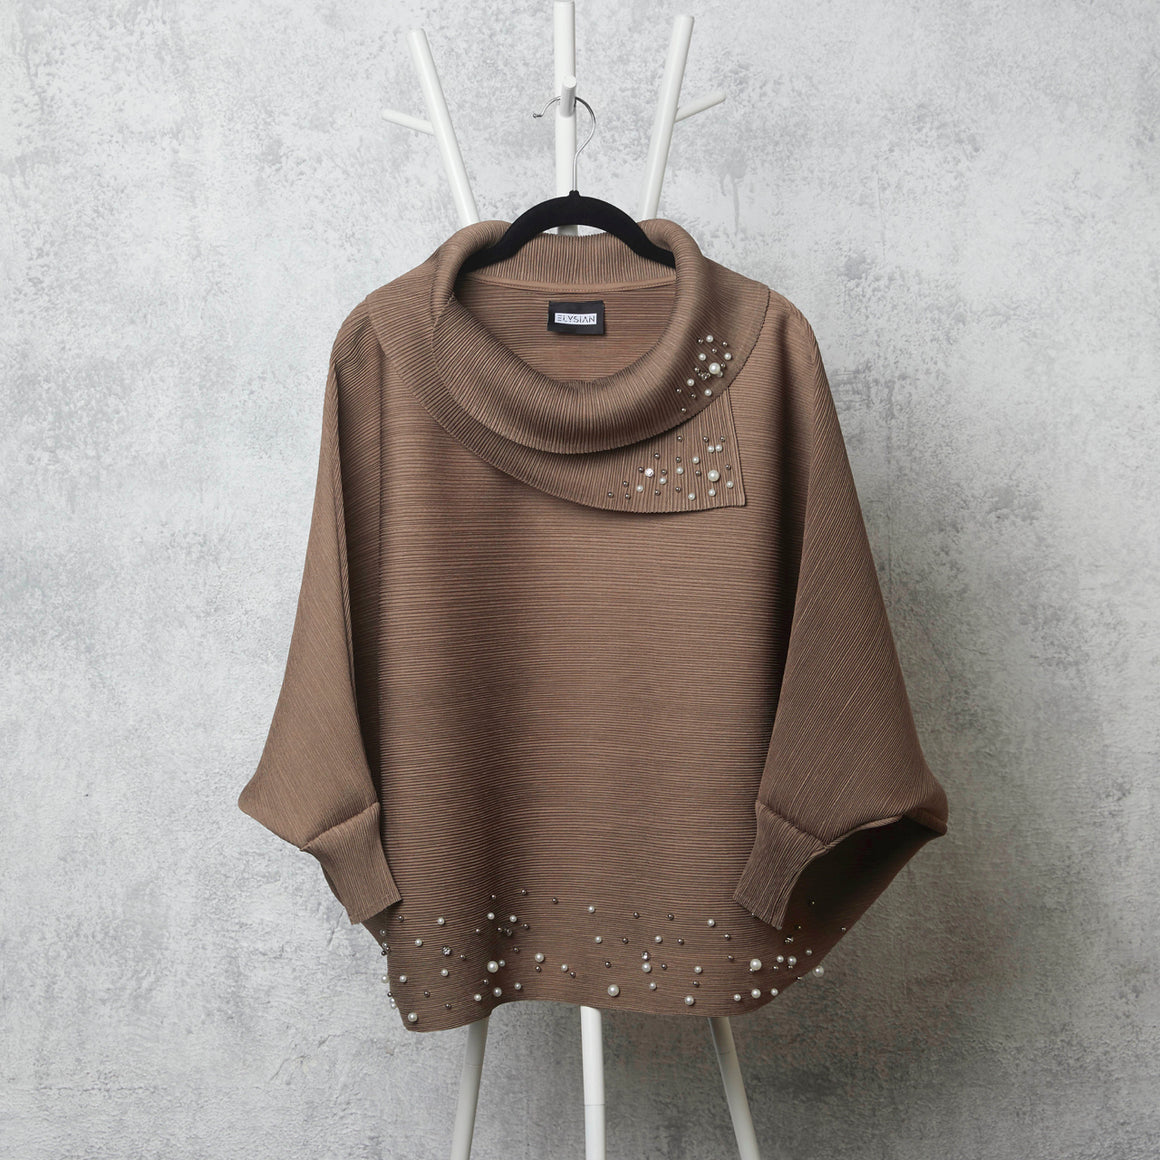 The Batwing Pearled Turtle Neck - Taupe